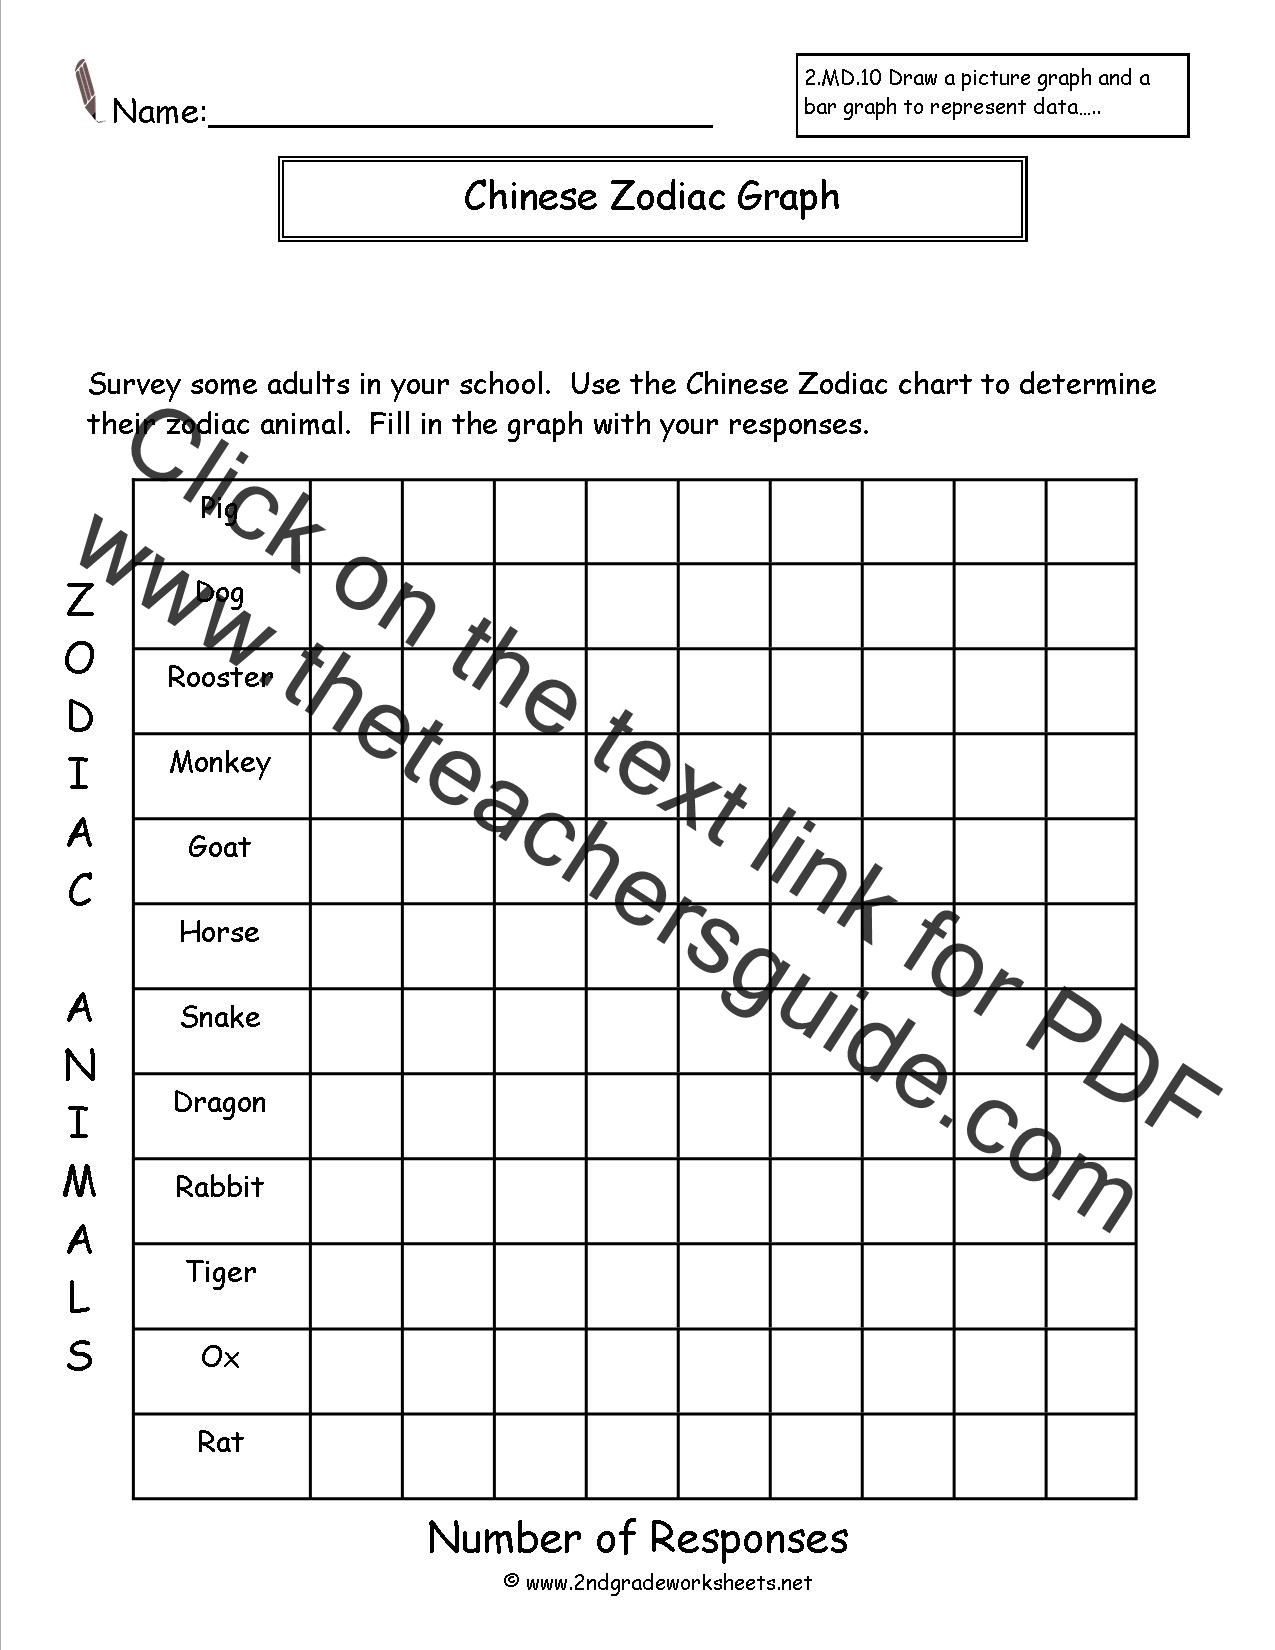 Reading Graphs Worksheets Middle School Reading Charts and Graphs Worksheets Free Trinity